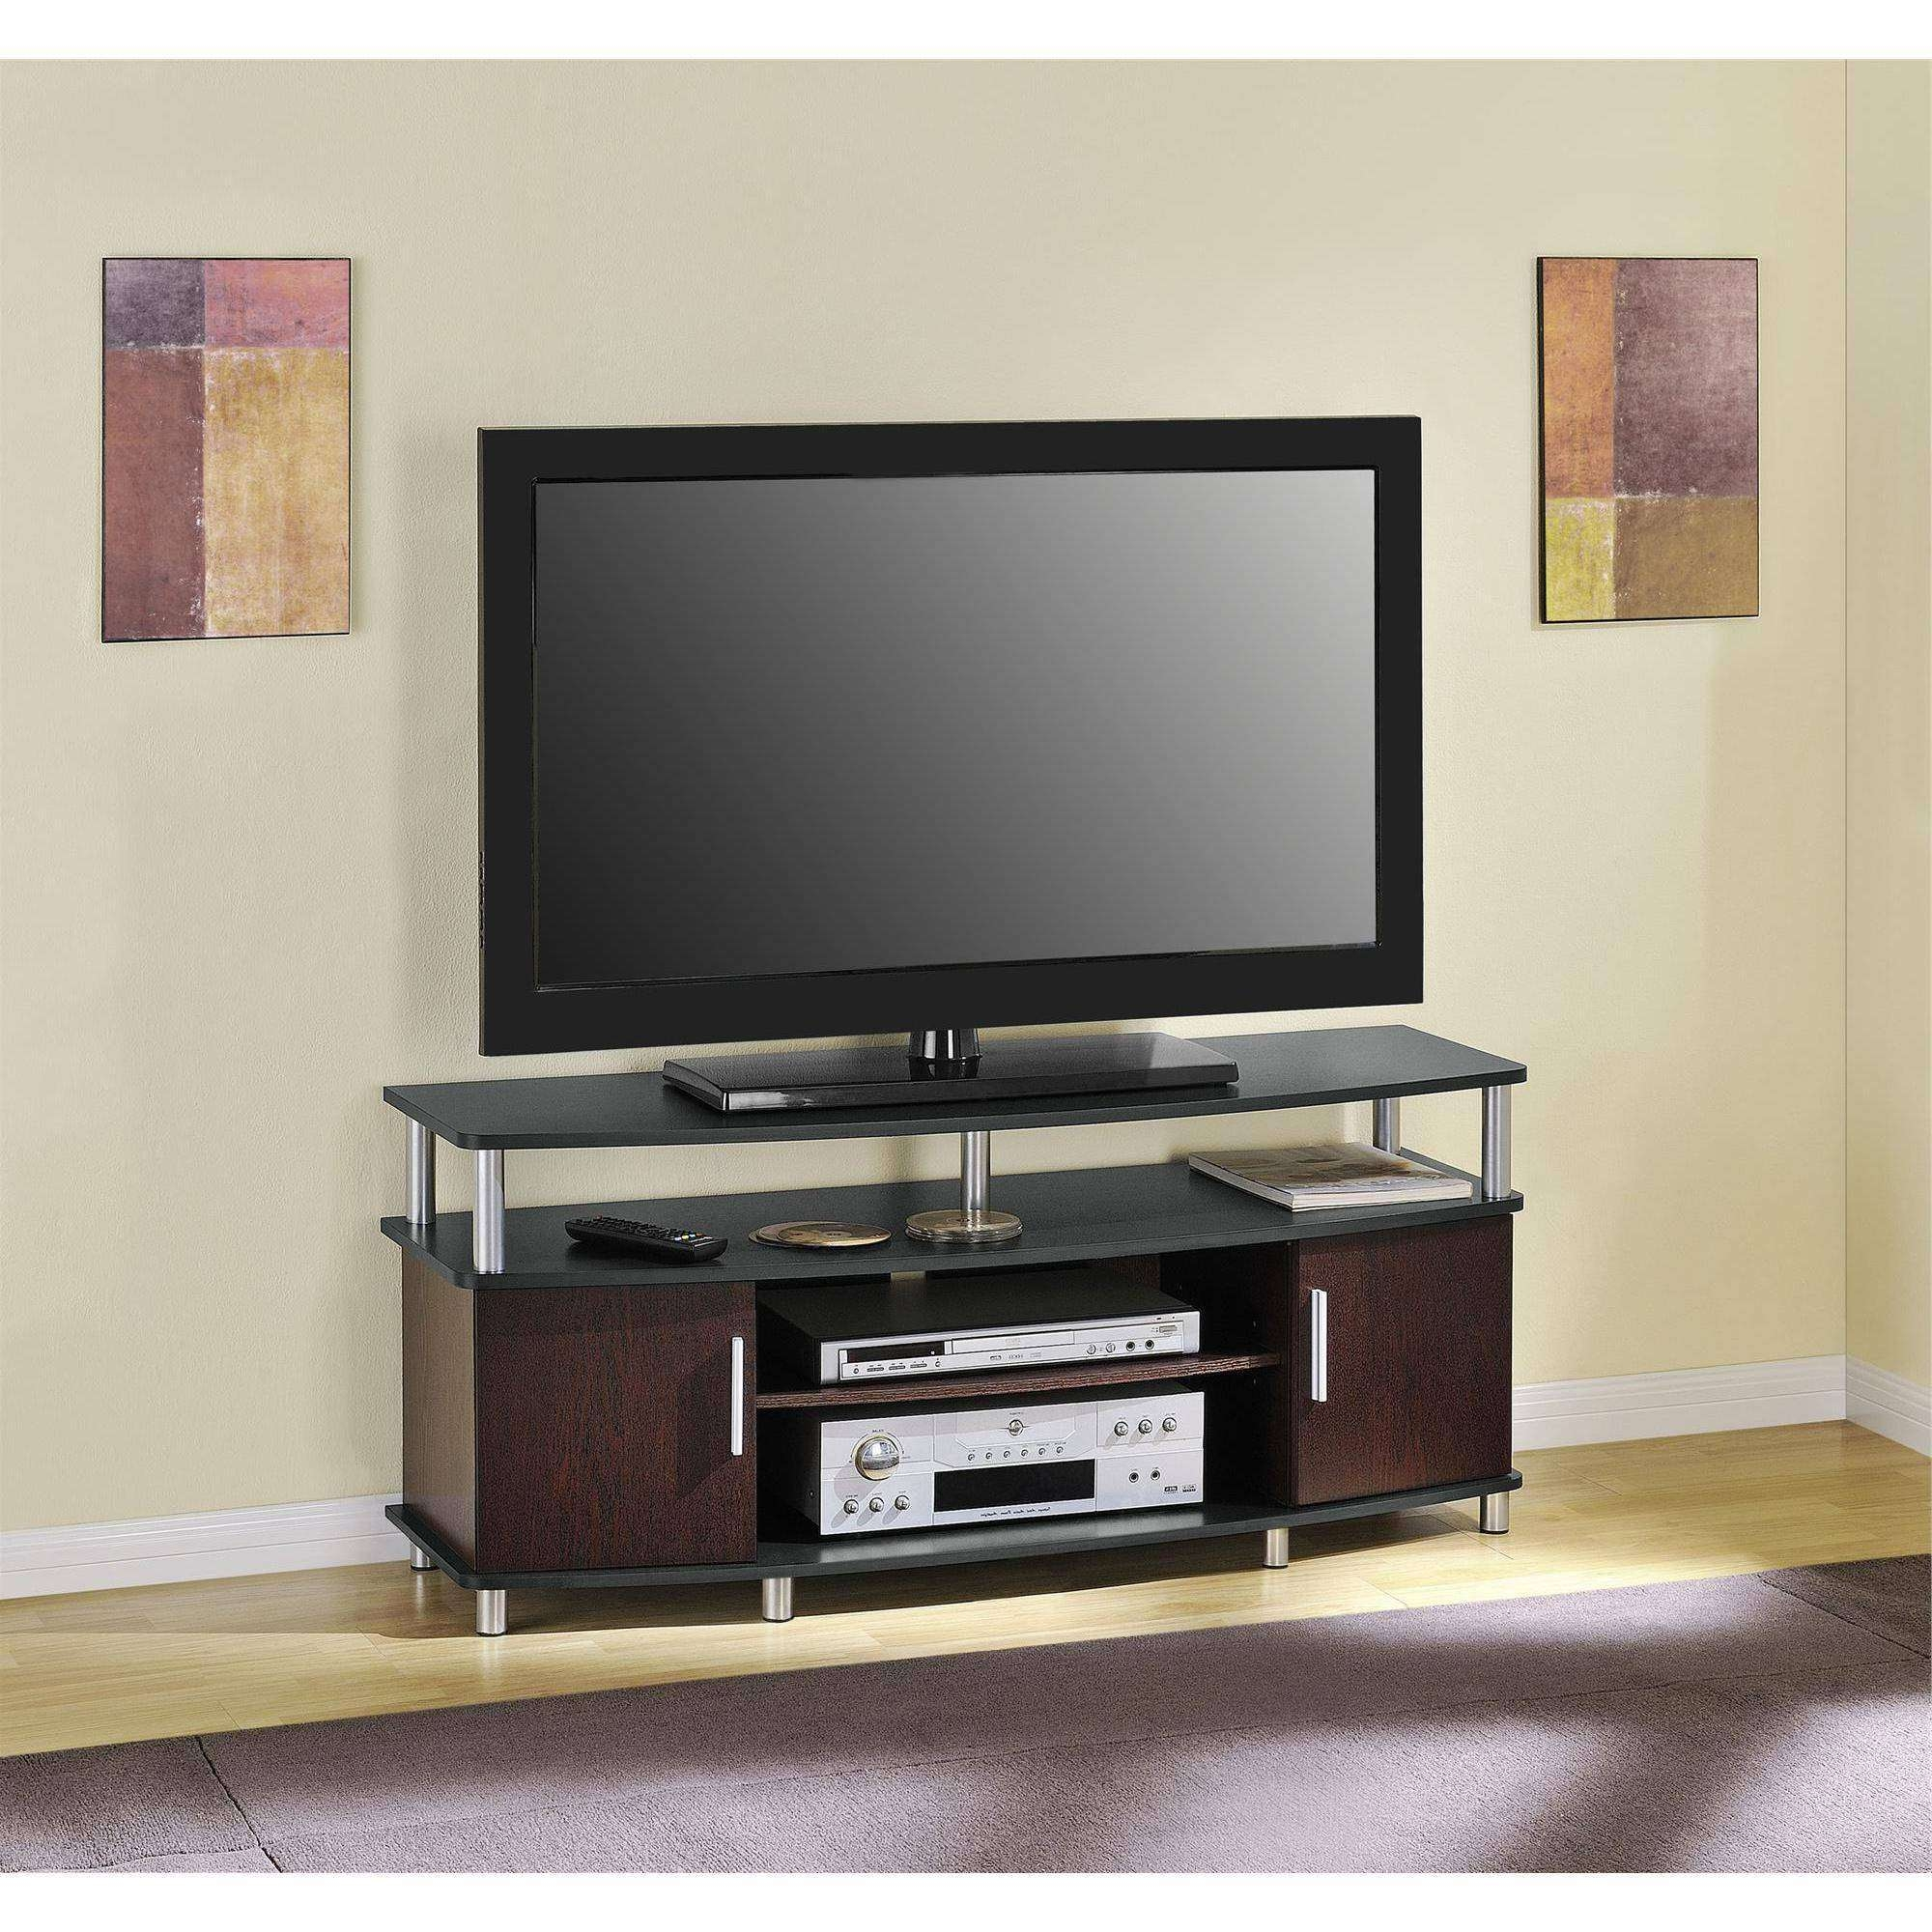 41 Dreaded Tv Stand 60 Inch Wide Photos Concept 60 Inch Wide Throughout Wide Tv Cabinets (View 3 of 20)